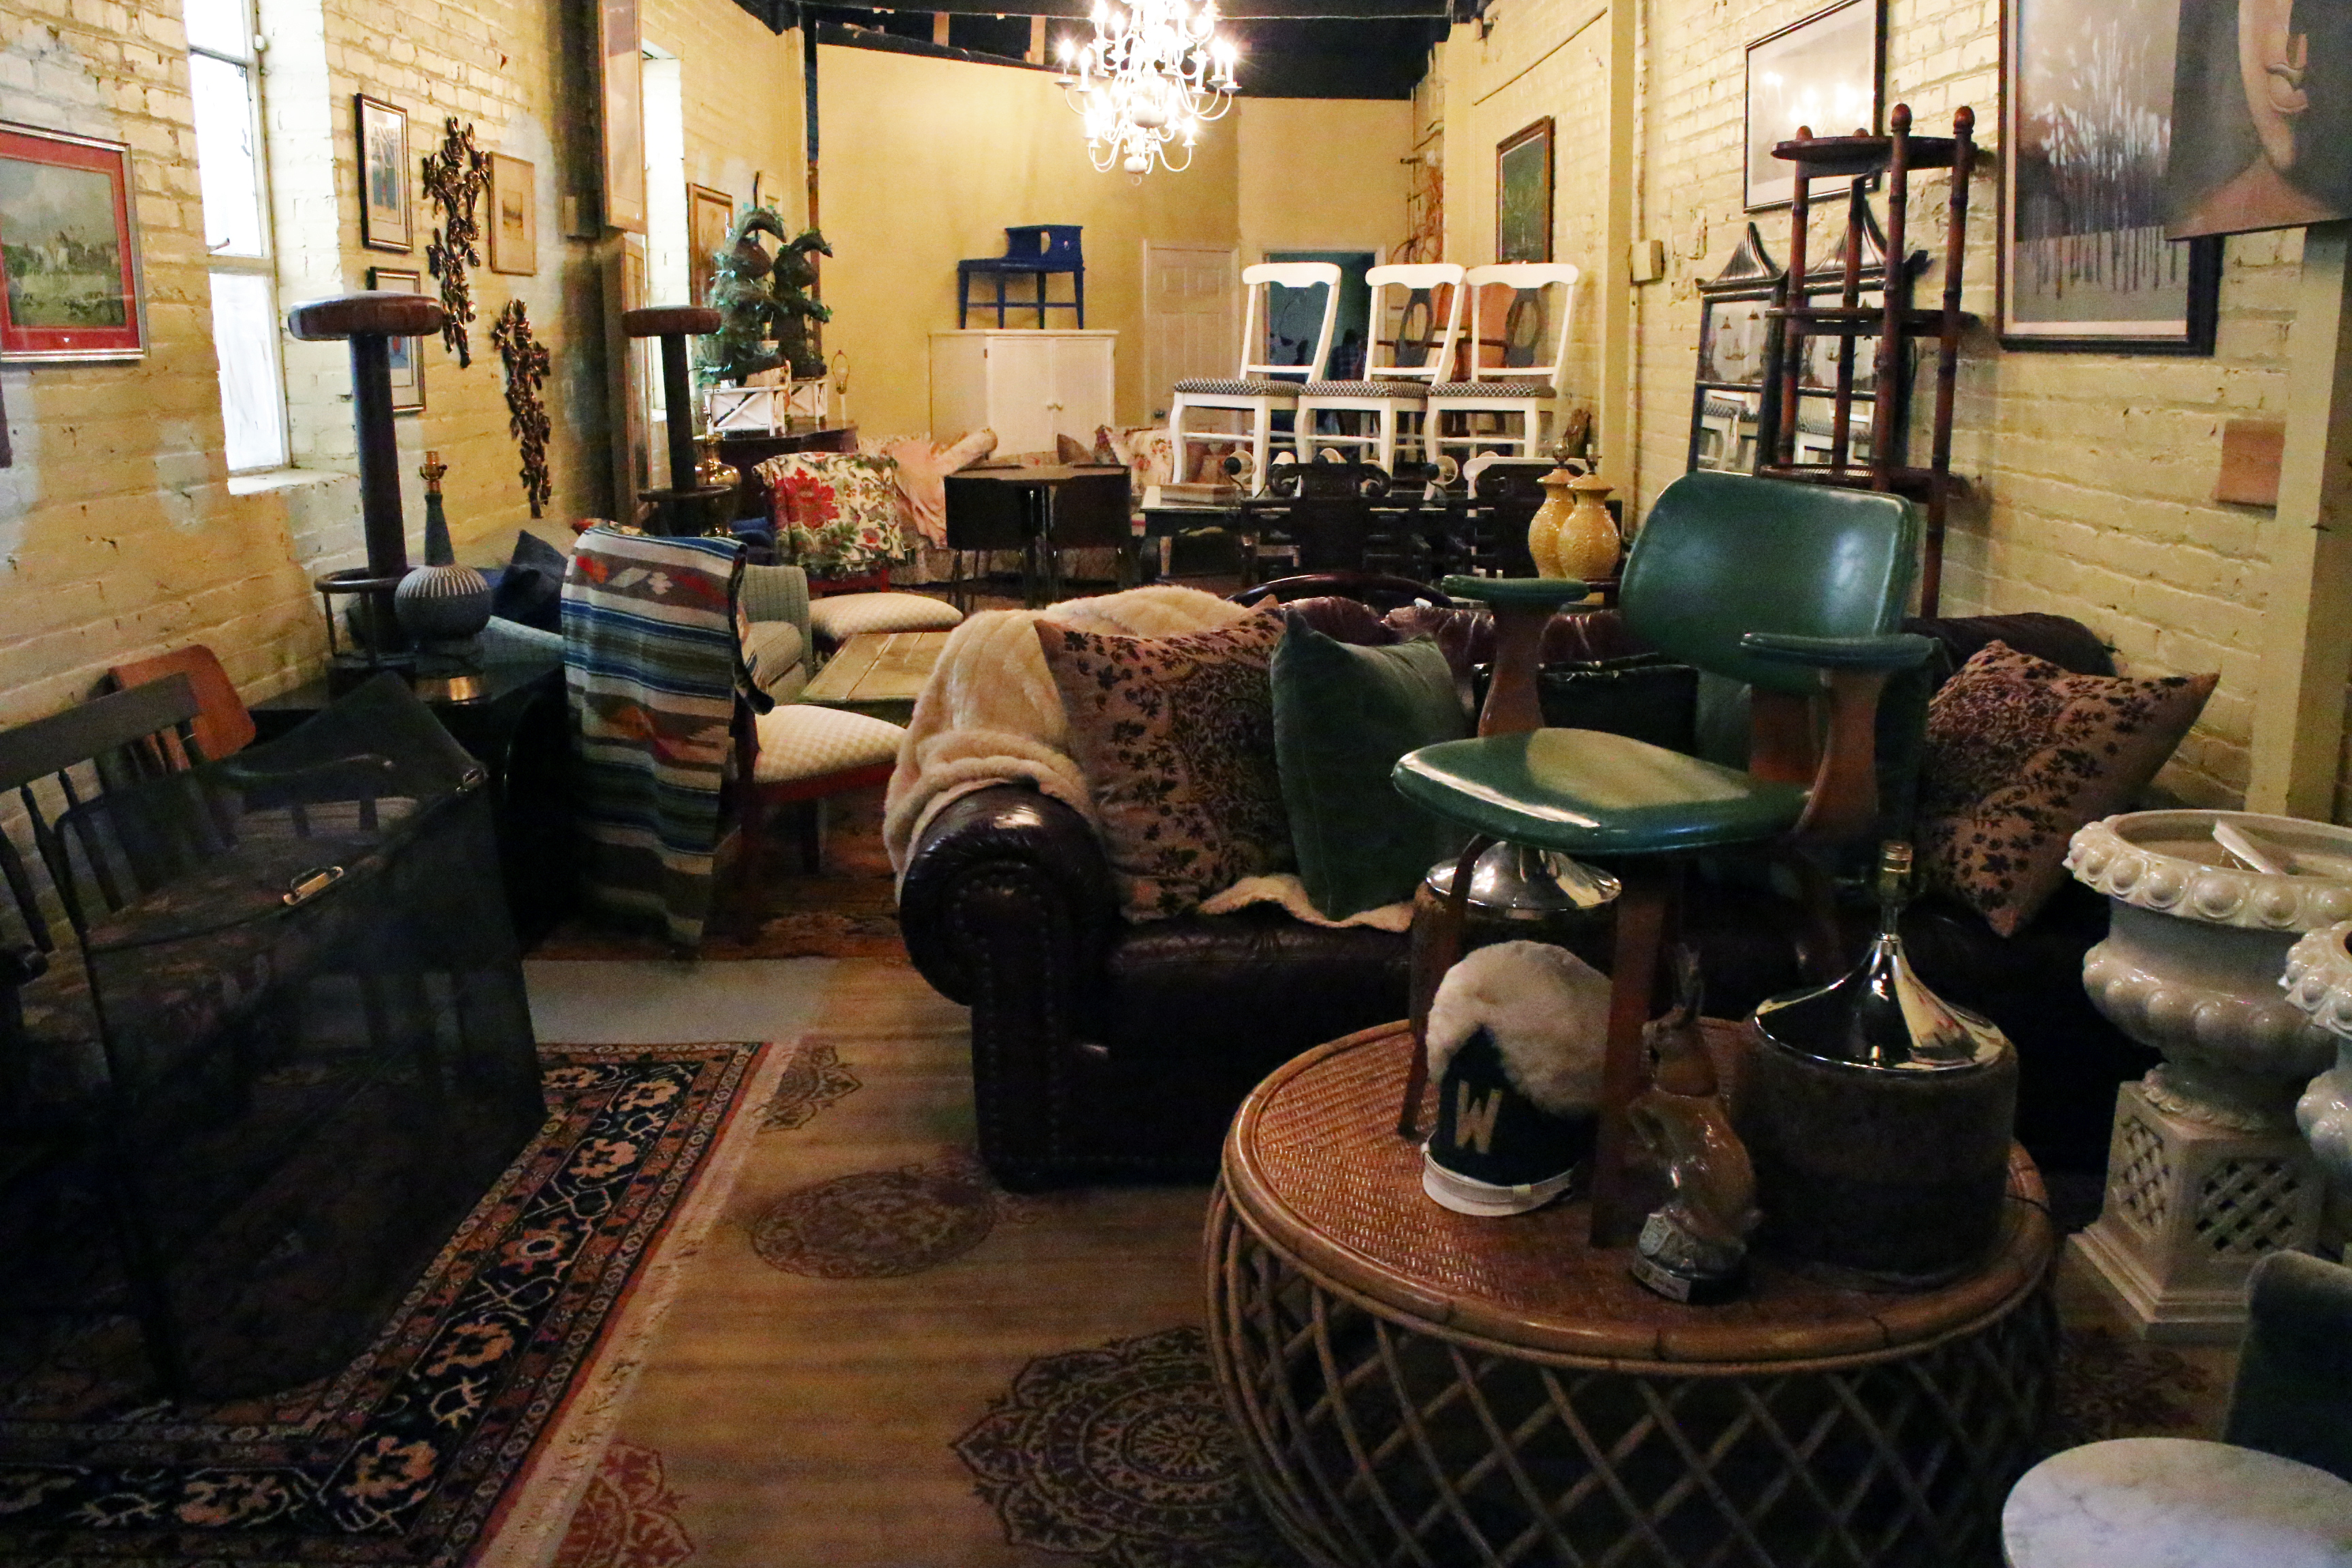 Genial Leftover Luxuries, A Furniture And Home Goods Consignment Shop, Opens Today  In Scottu0027s Addition